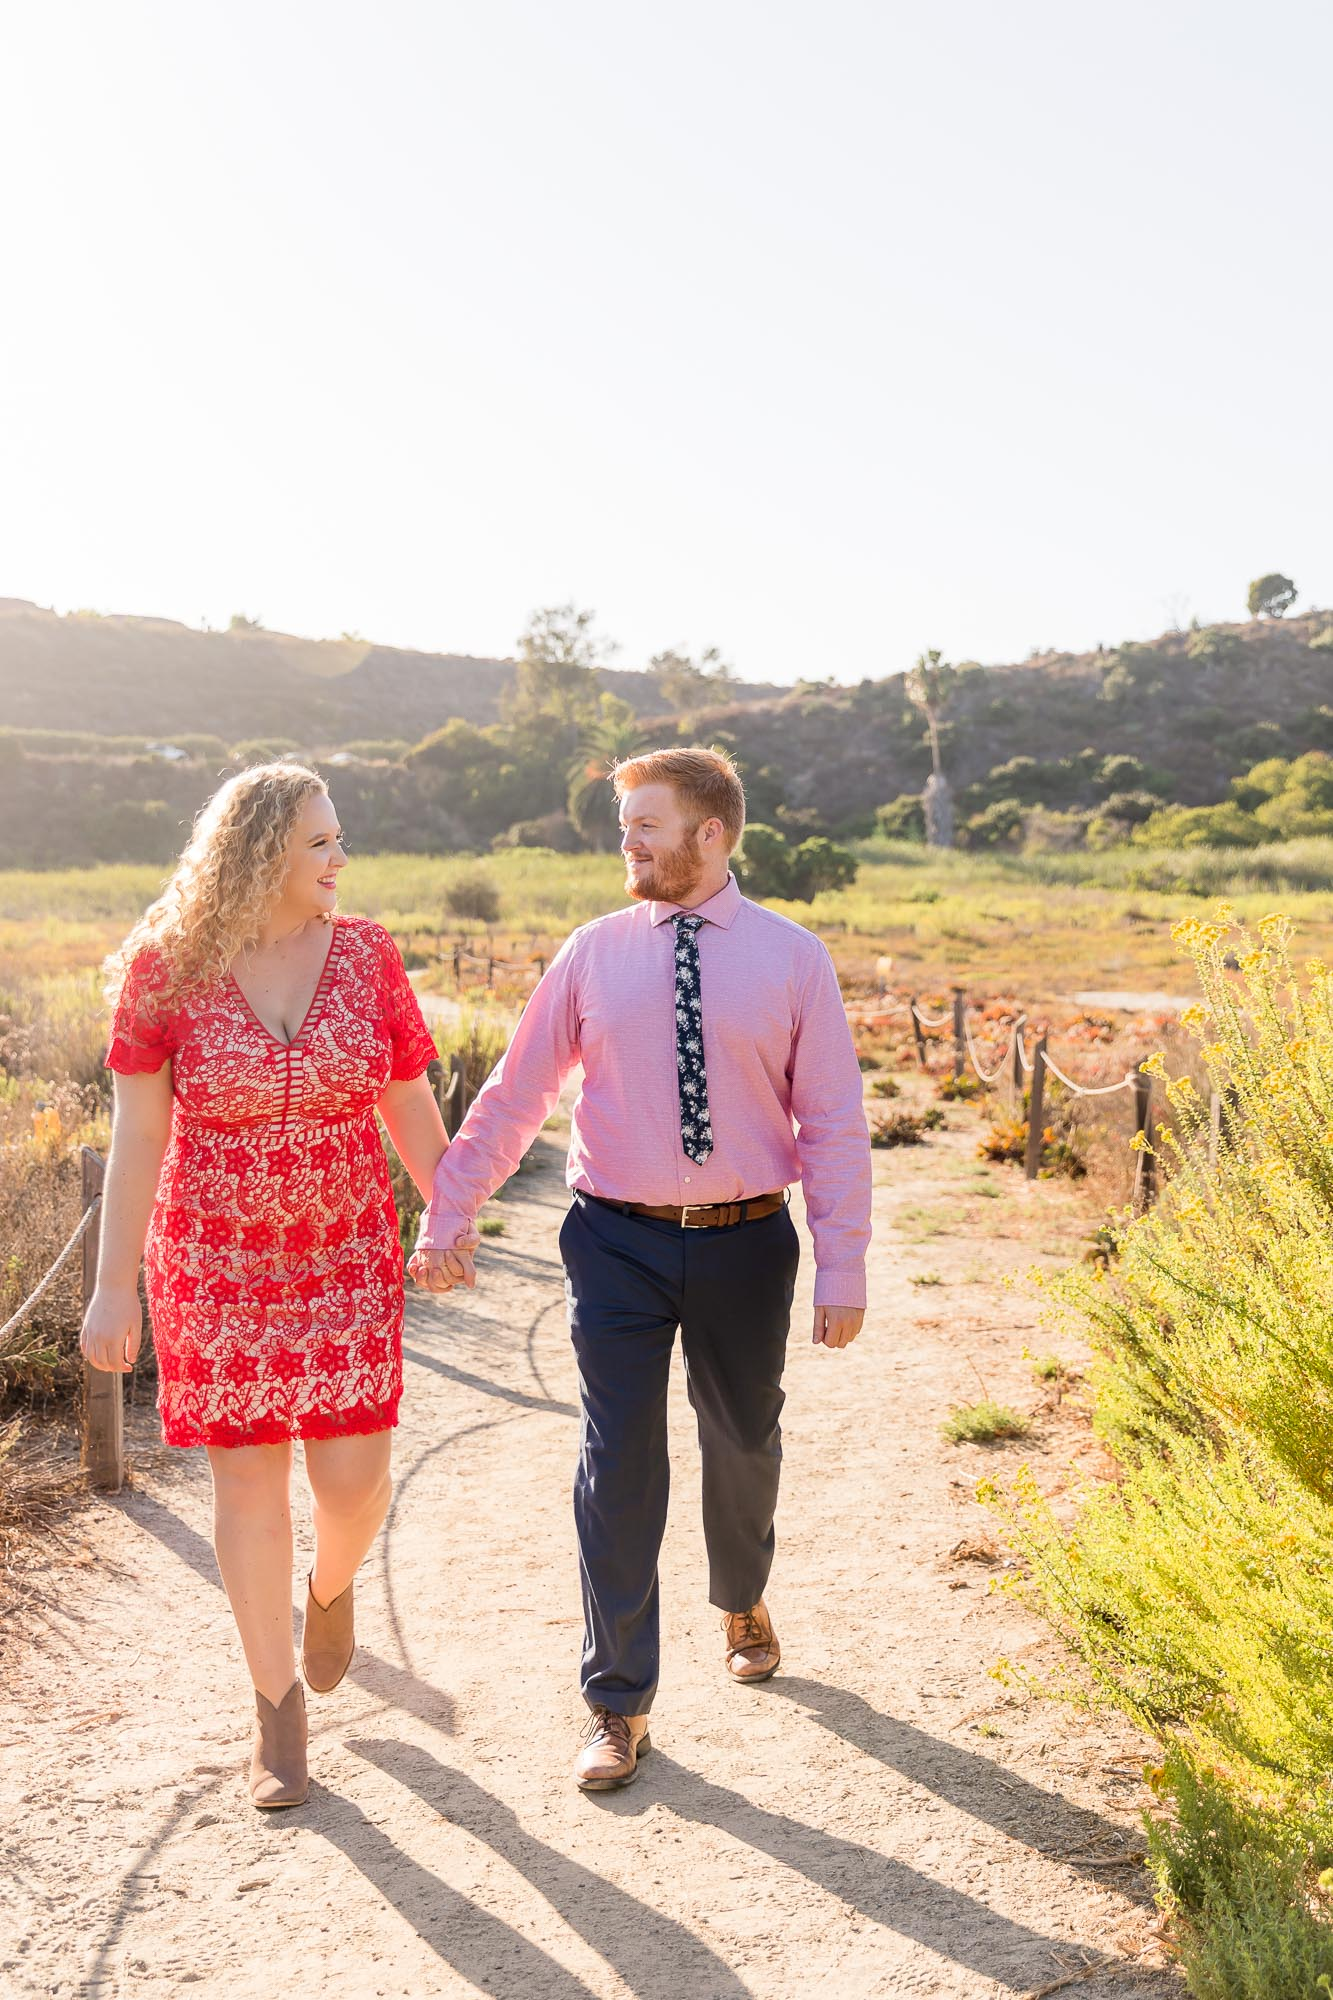 Tierney_Gregory_Batiquitos_Lagoon_Engagement_Session_022.jpg